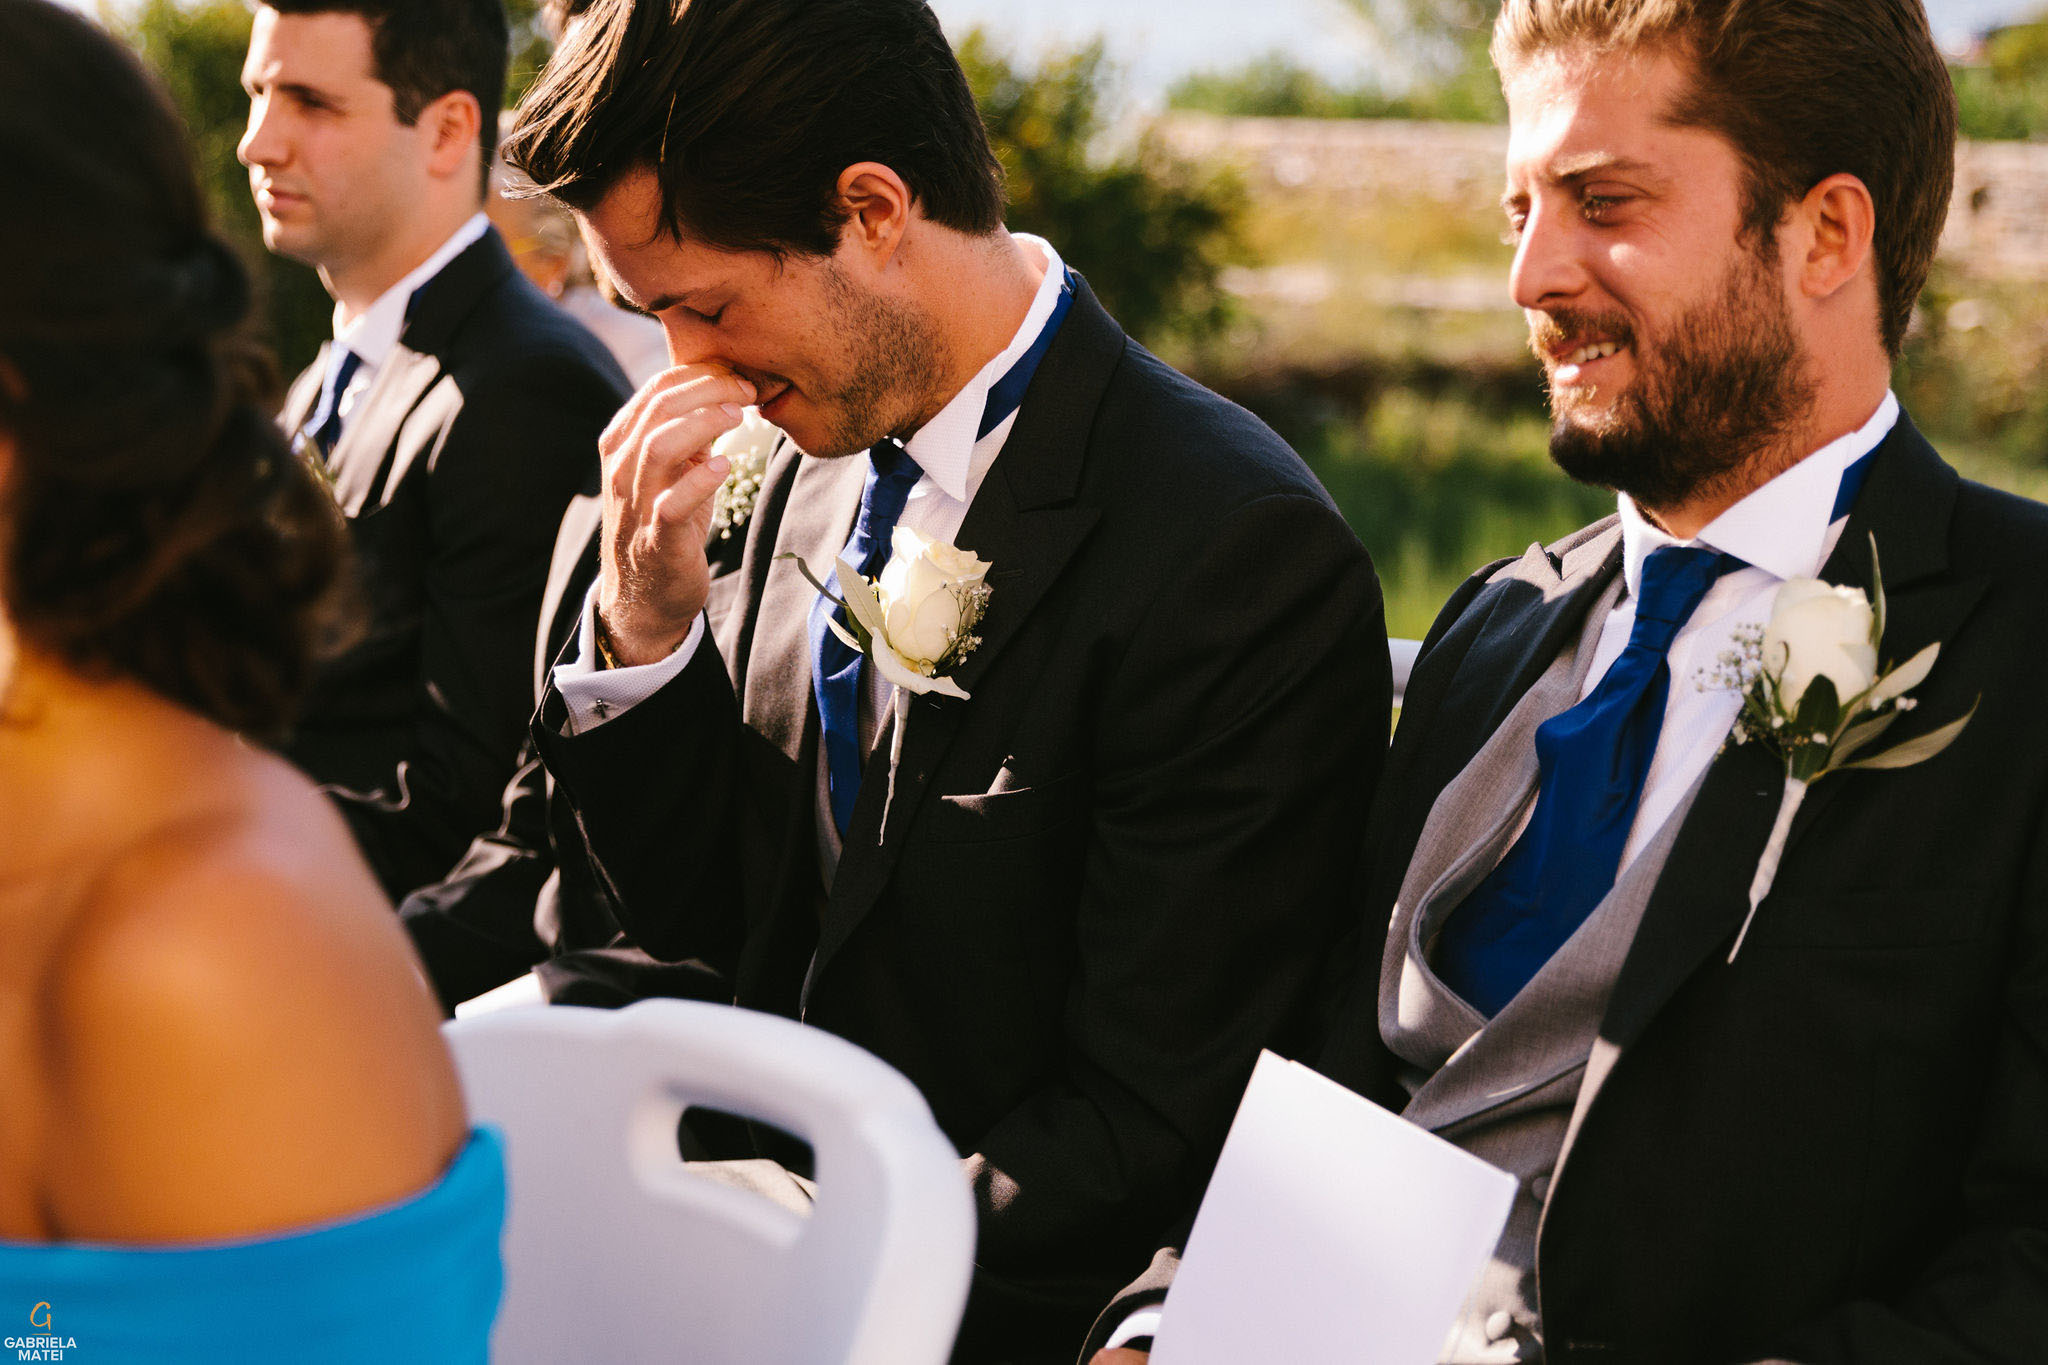 Best man crying at wedding